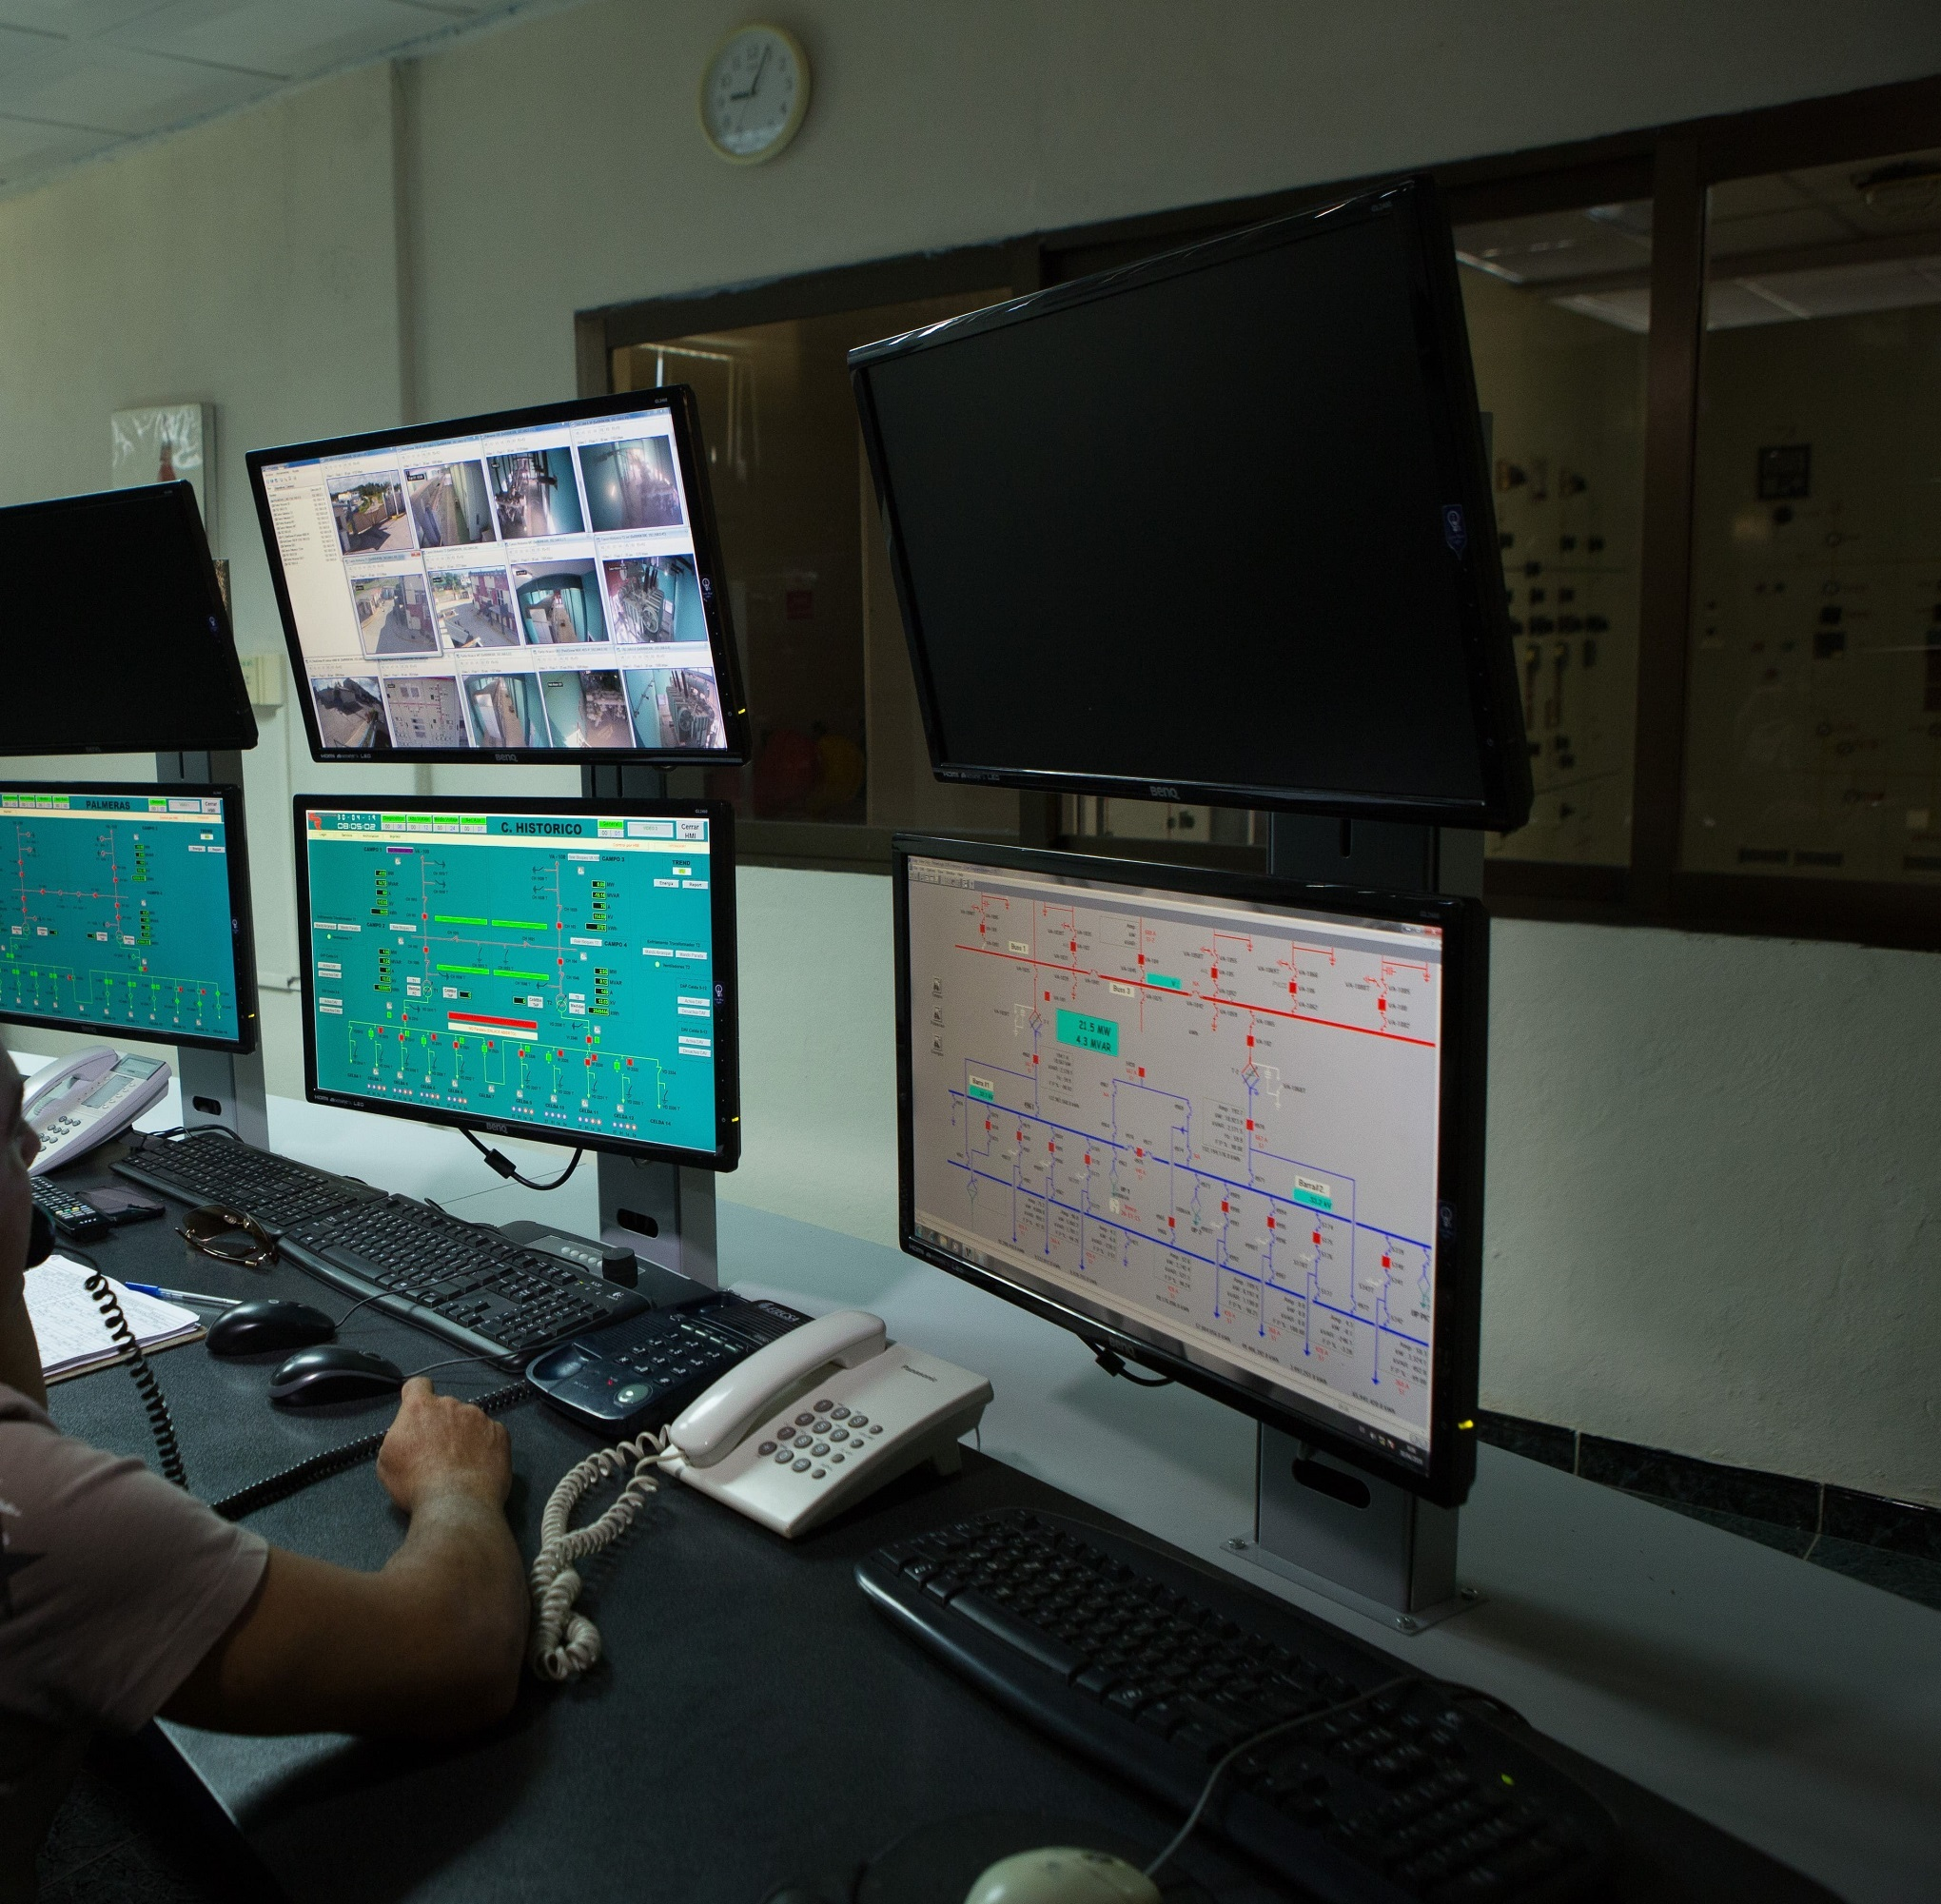 Supervisory Control And Data Acquisition per il monitoraggio dell'impianto